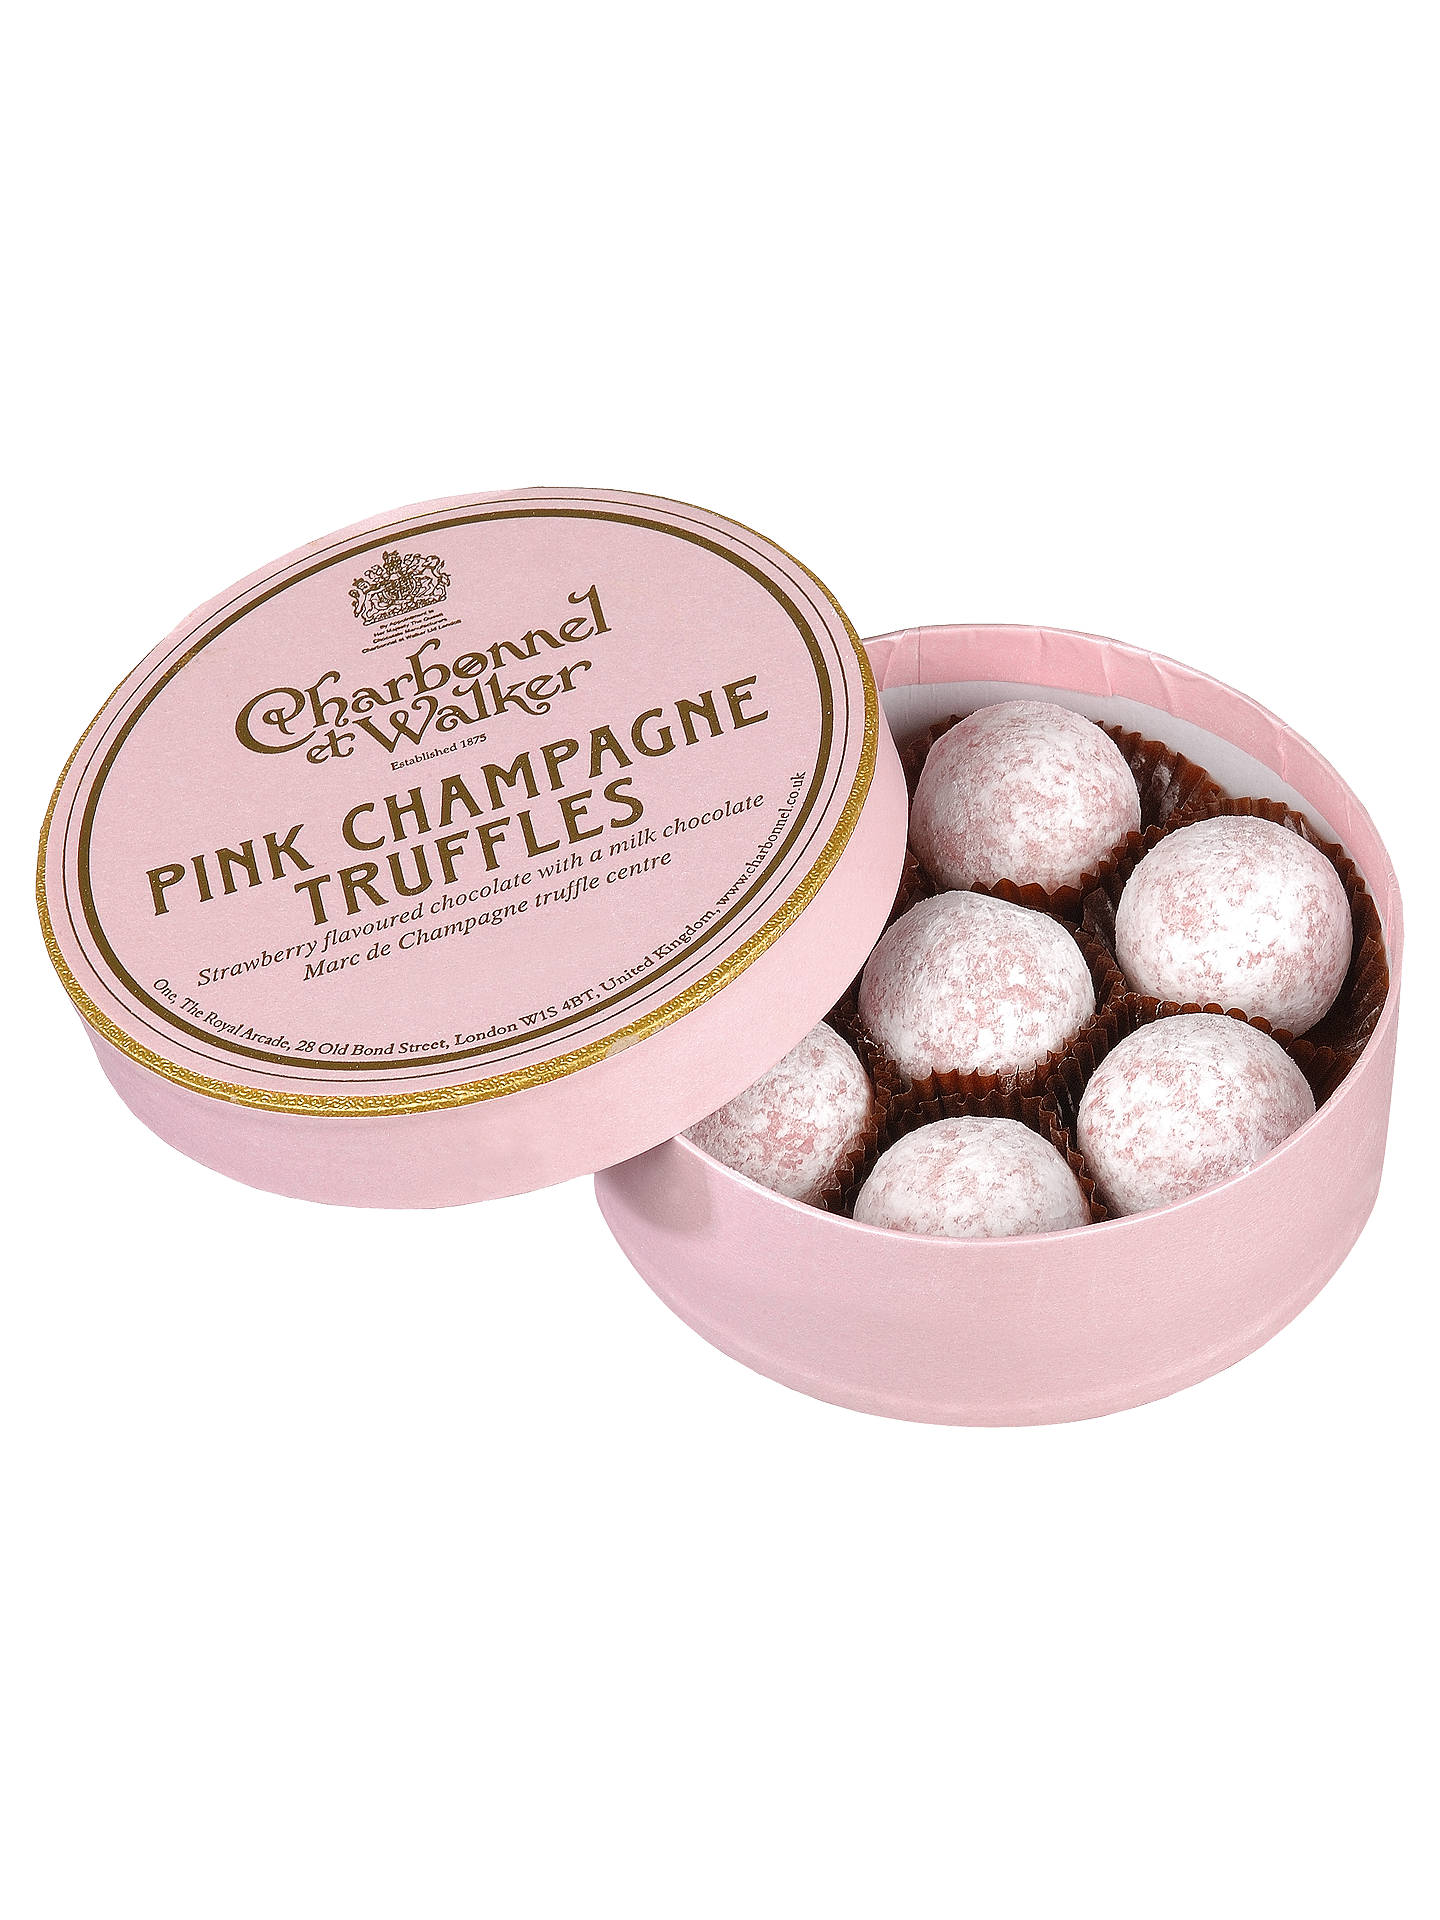 e2ed14ae5 BuyCharbonnel et Walker Pink Champagne Truffles